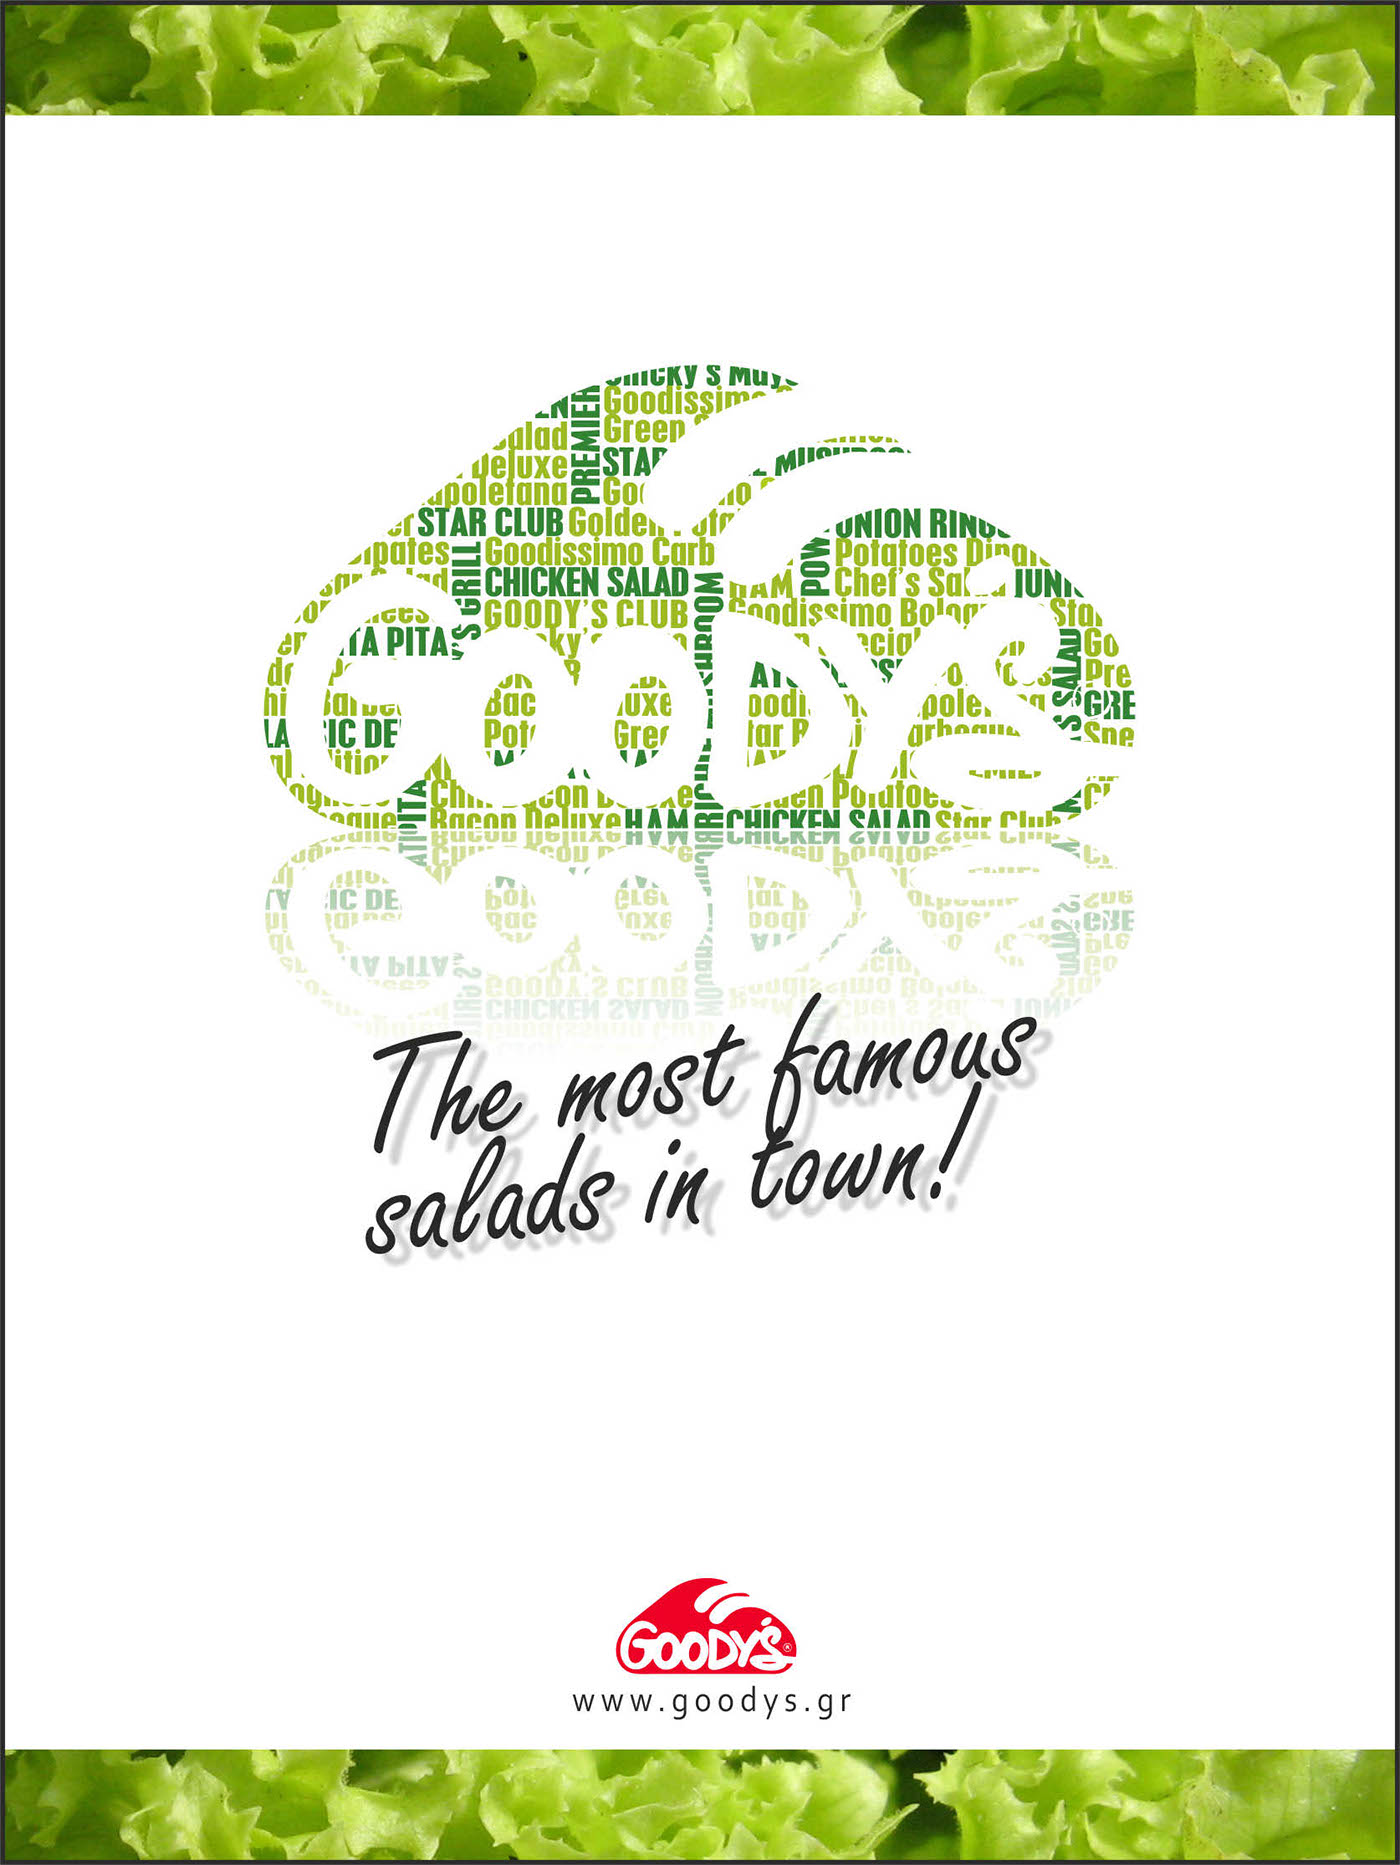 Goody S Advertising Idea Types Of Advertising On Behance